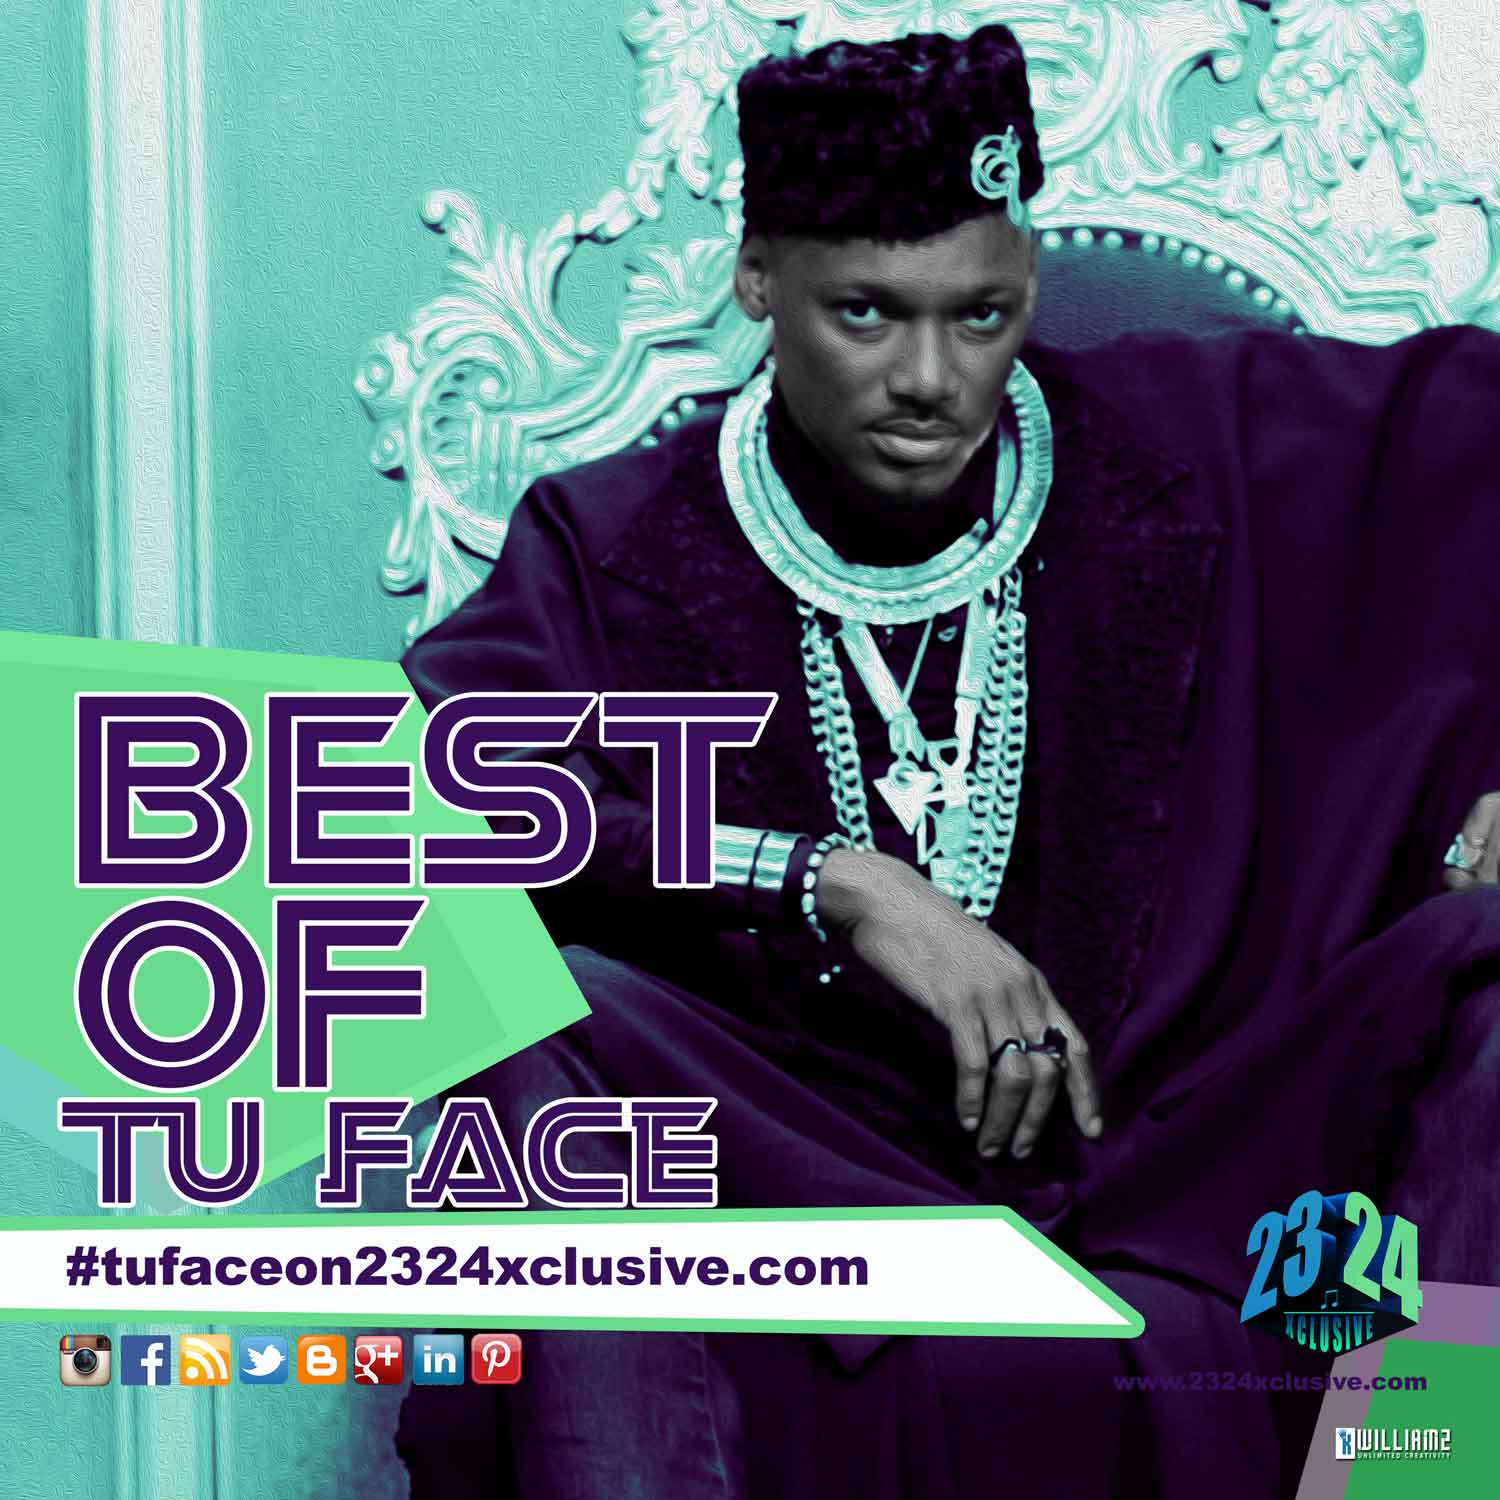 Innocent Ujah Idibia Born In Jos Plateau State Nigeria Better Known By His Stage Name 2face Is A Nigerian Singer Songwriter Record Producer